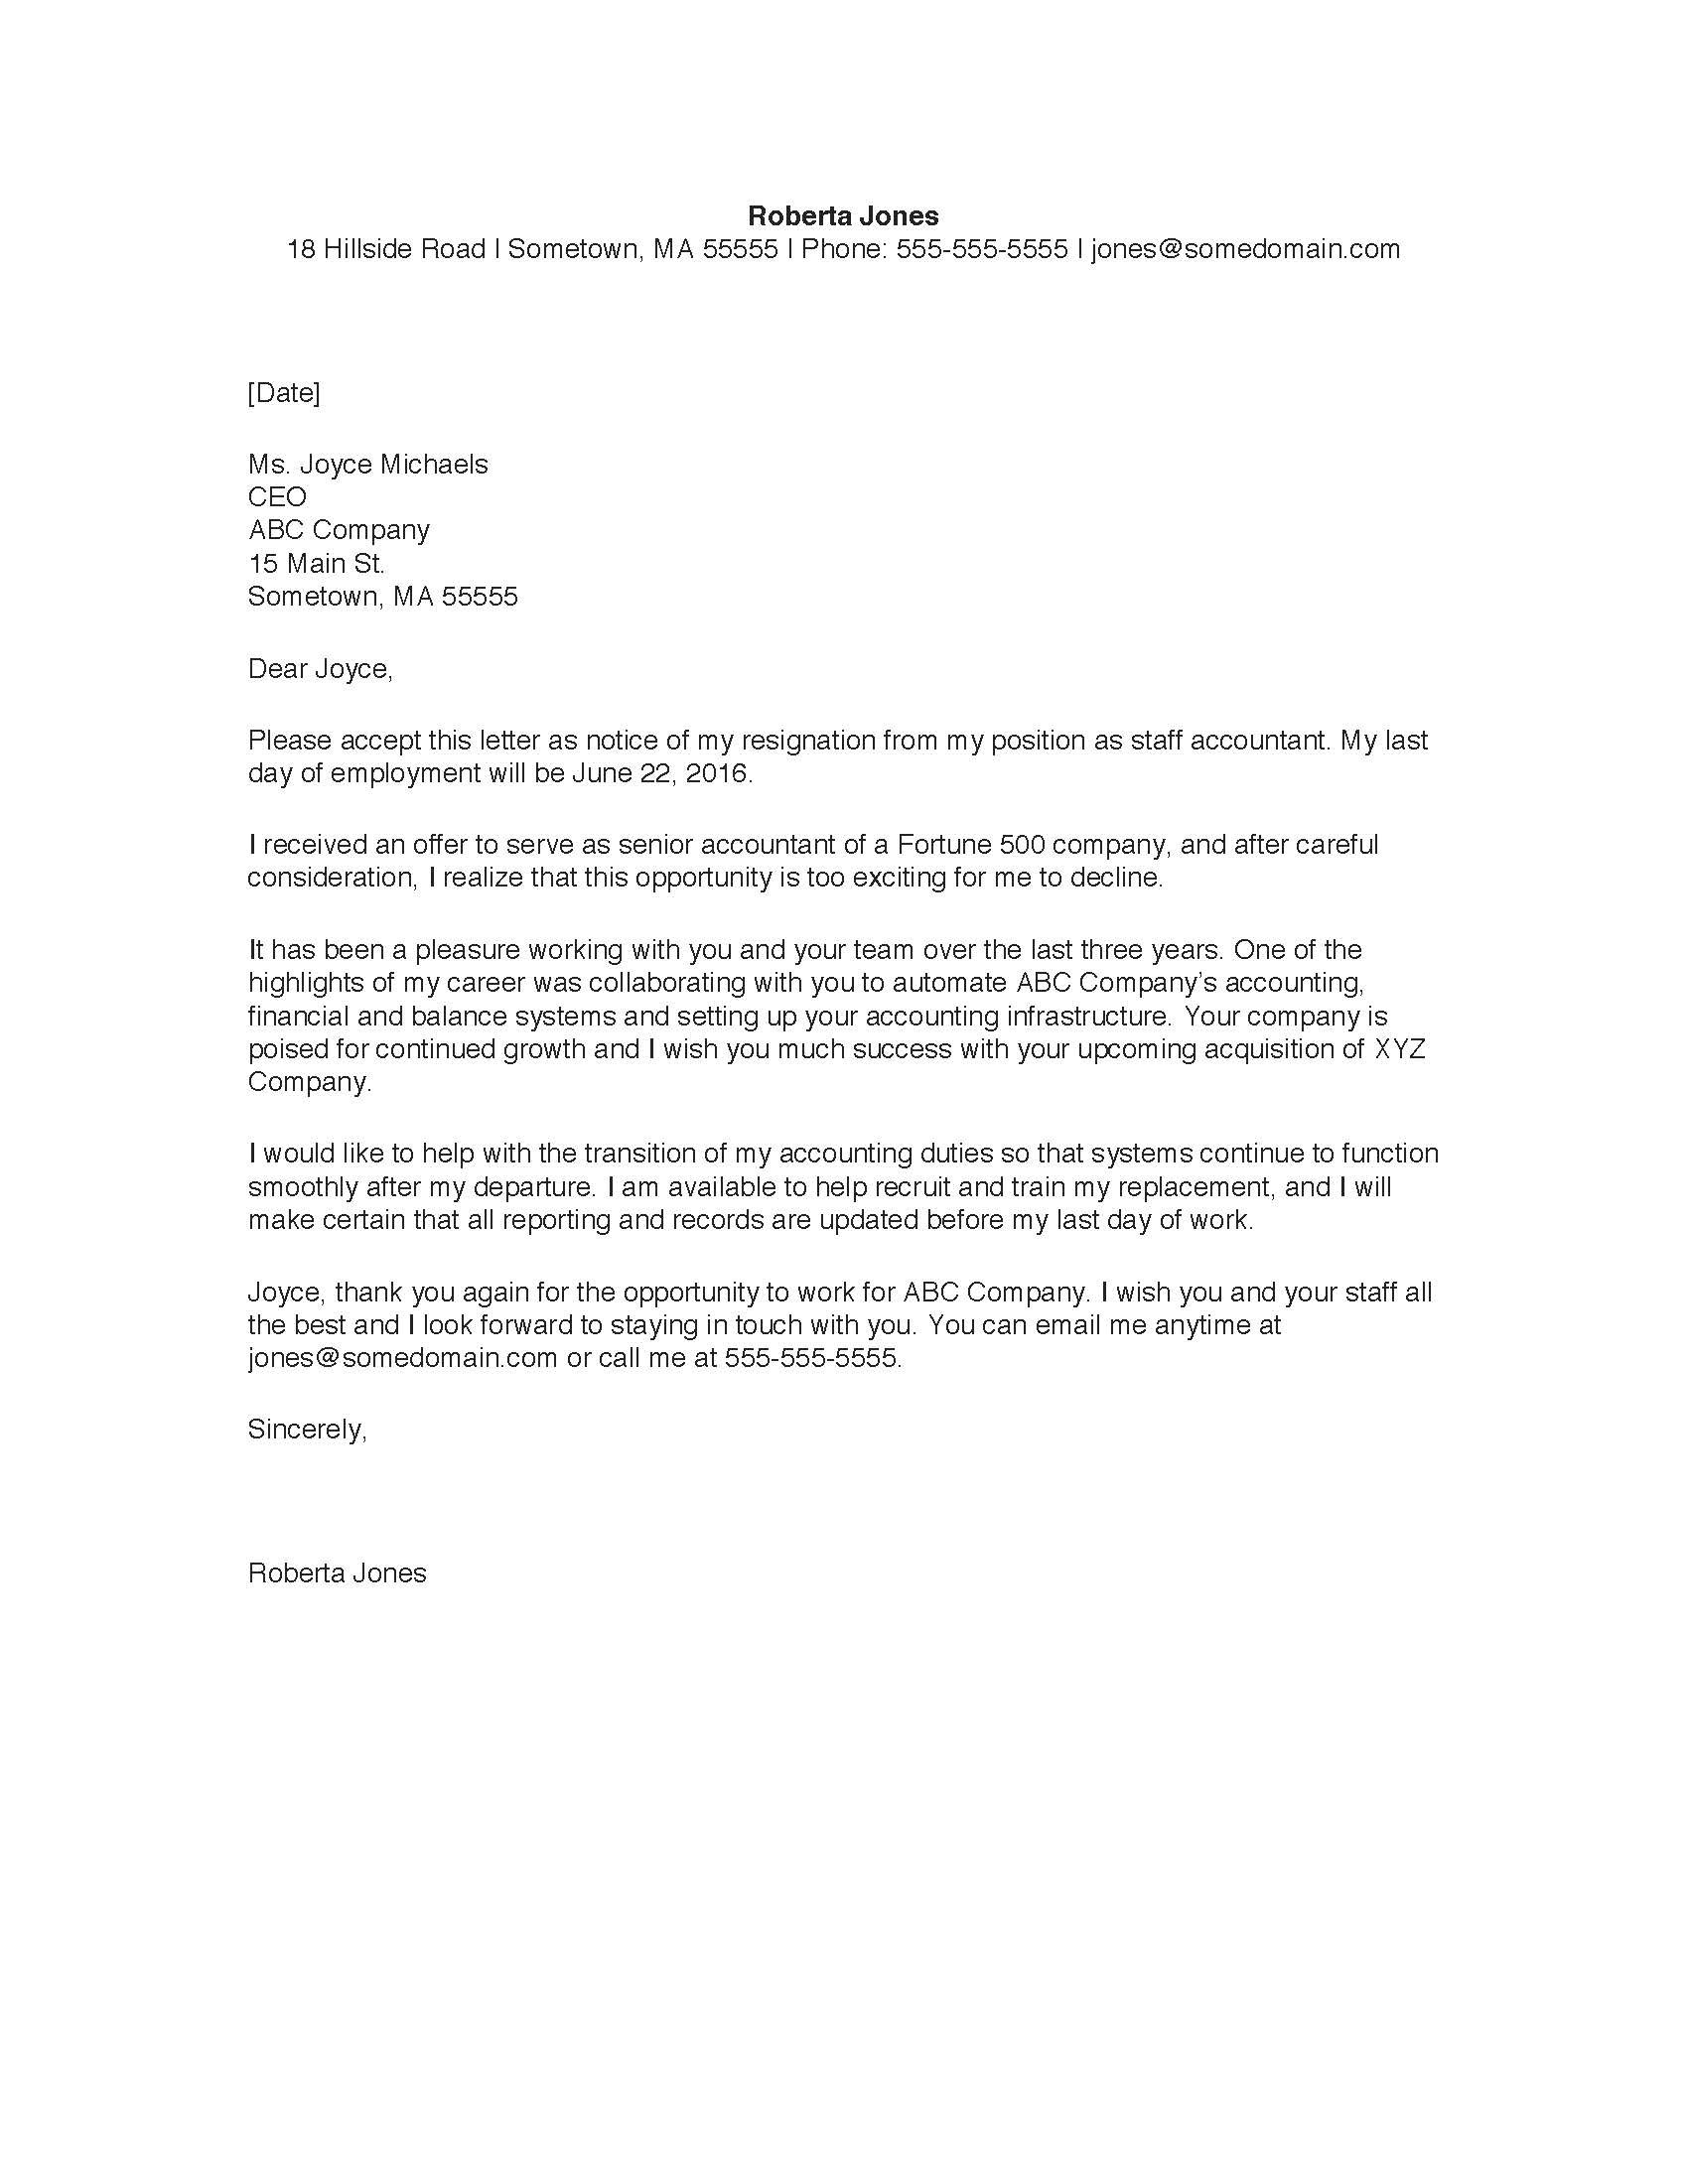 pharmacy technician letter sample resignation letter 23963 | resignationletter